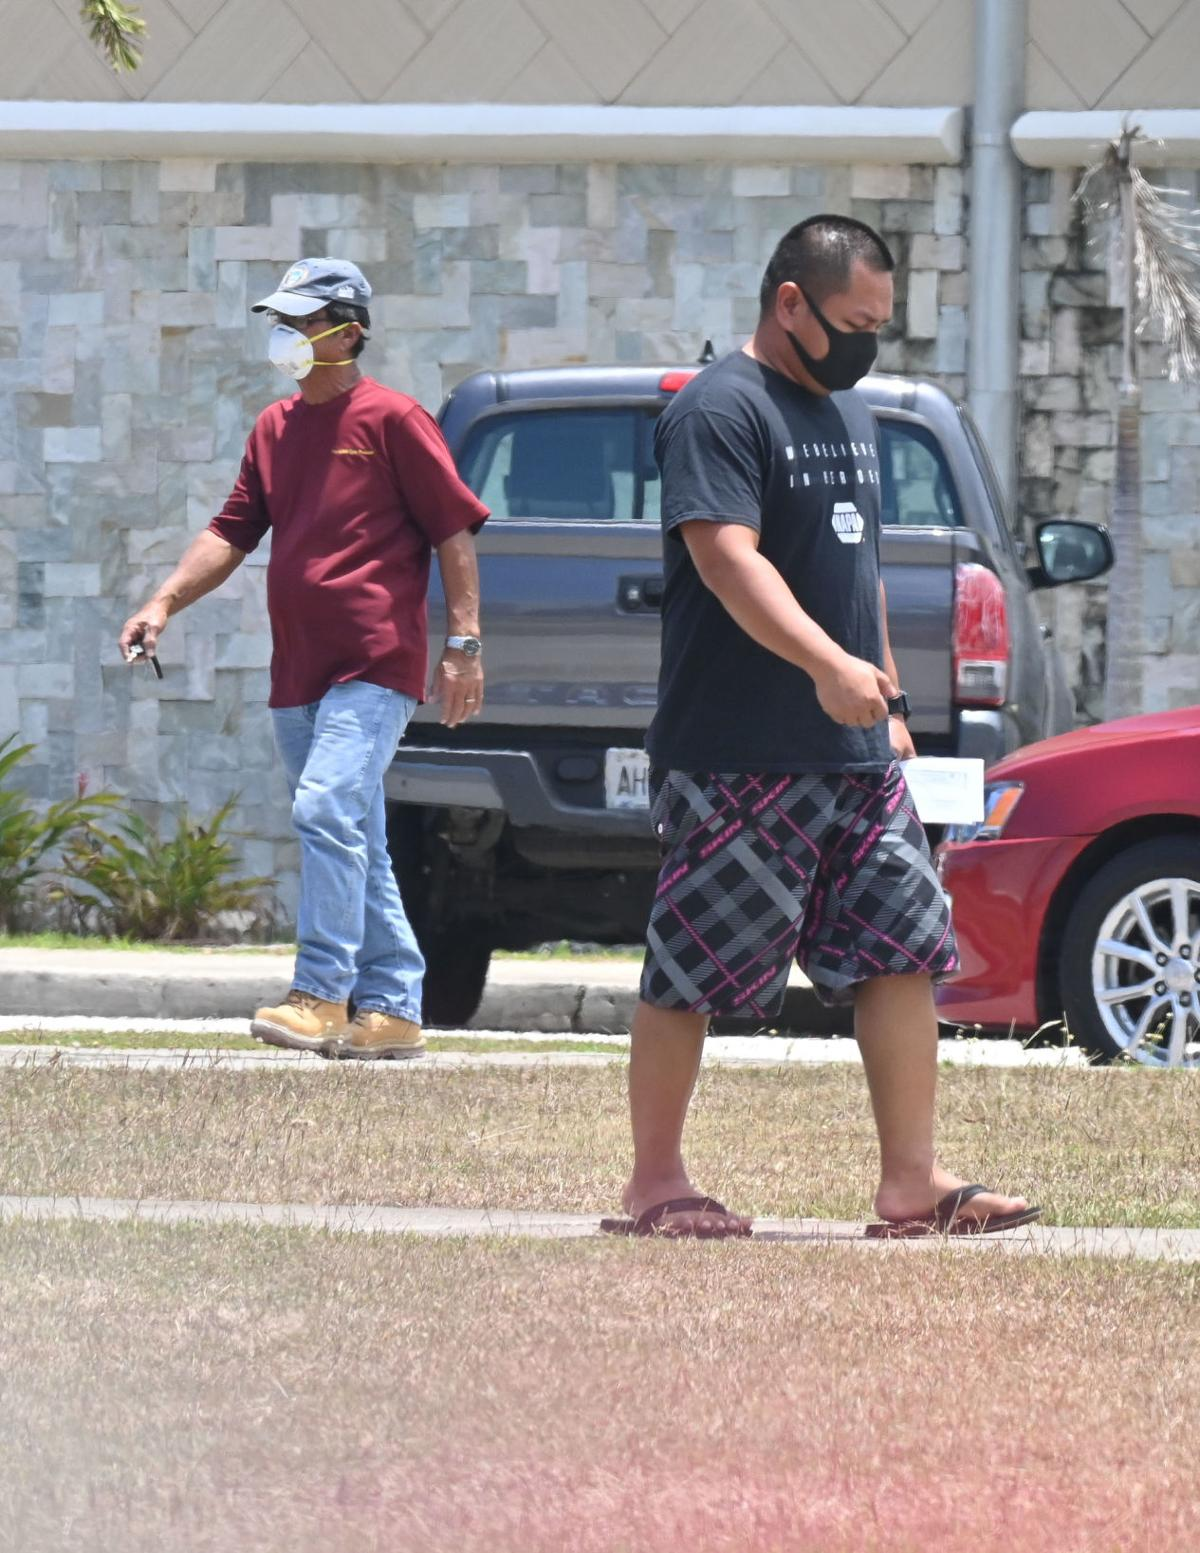 GovGuam aims to 'test every person'